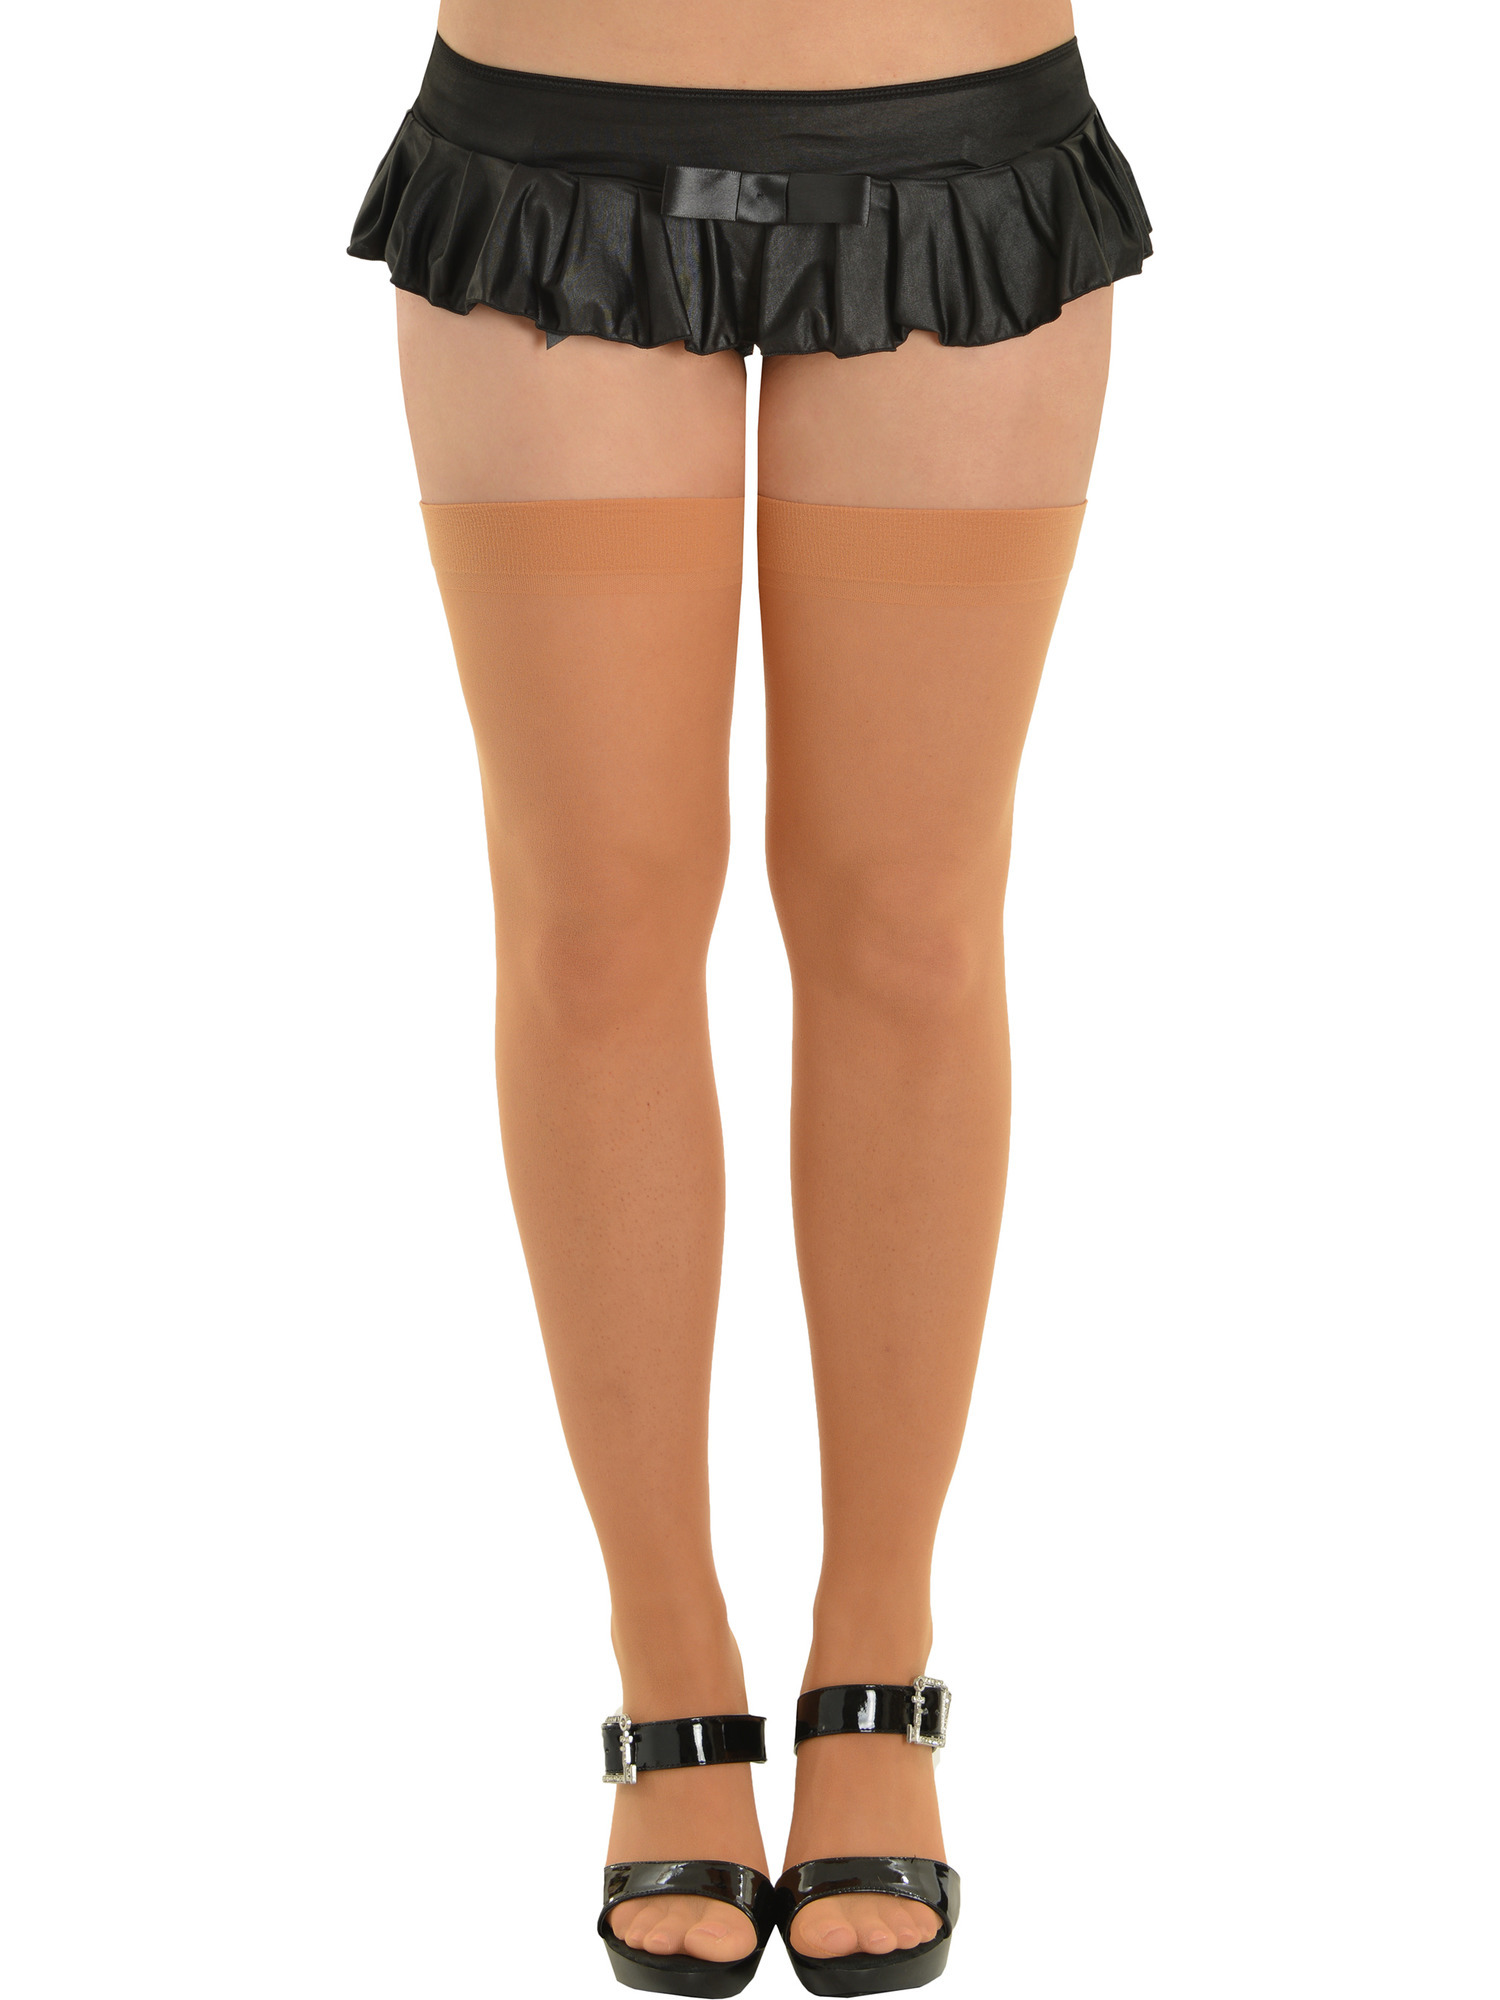 Womens Pink and Black Striped Thigh High Tights Hold Ups Elastic Adult Size NEW